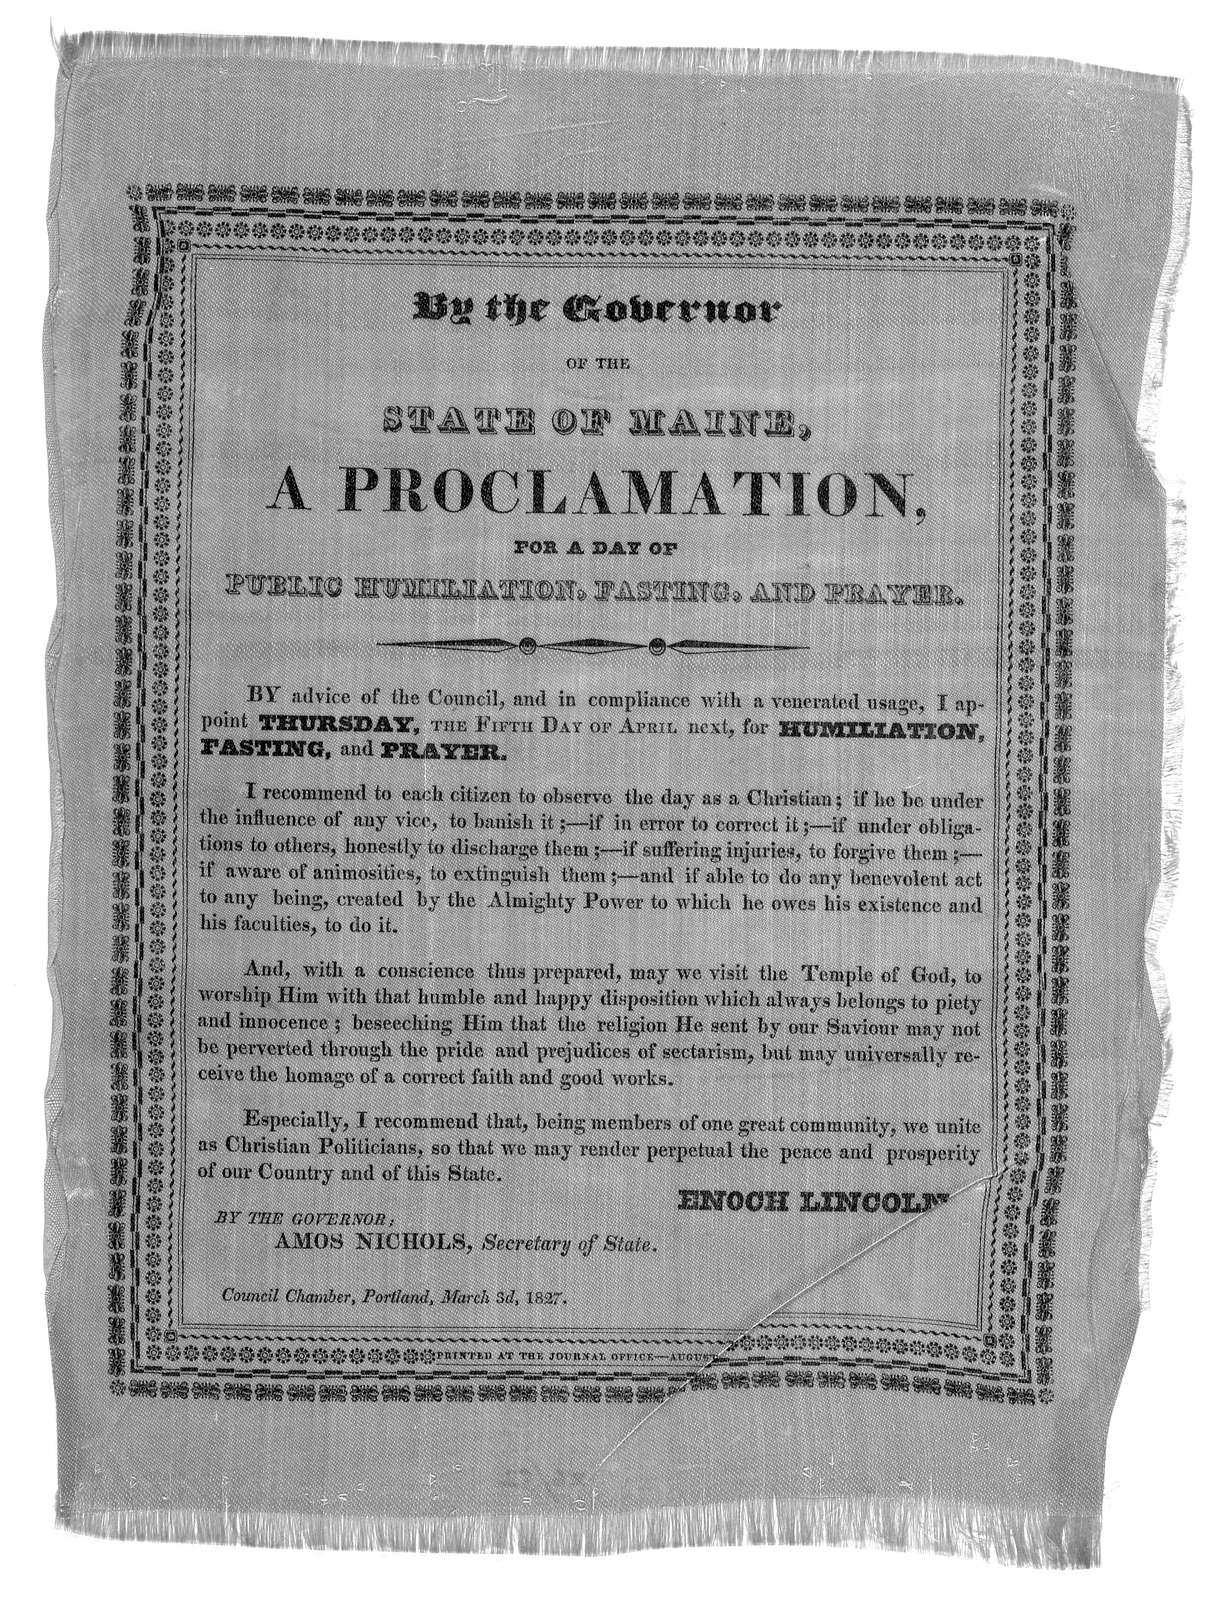 By the Governor of the state of Maine, a proclamation, for a day of public humiliation, fasting , and prayer. By advice of the Council, and in compliance with a venerated usage, I appoint Thursday, the fifth day of April next, for humiliation, f